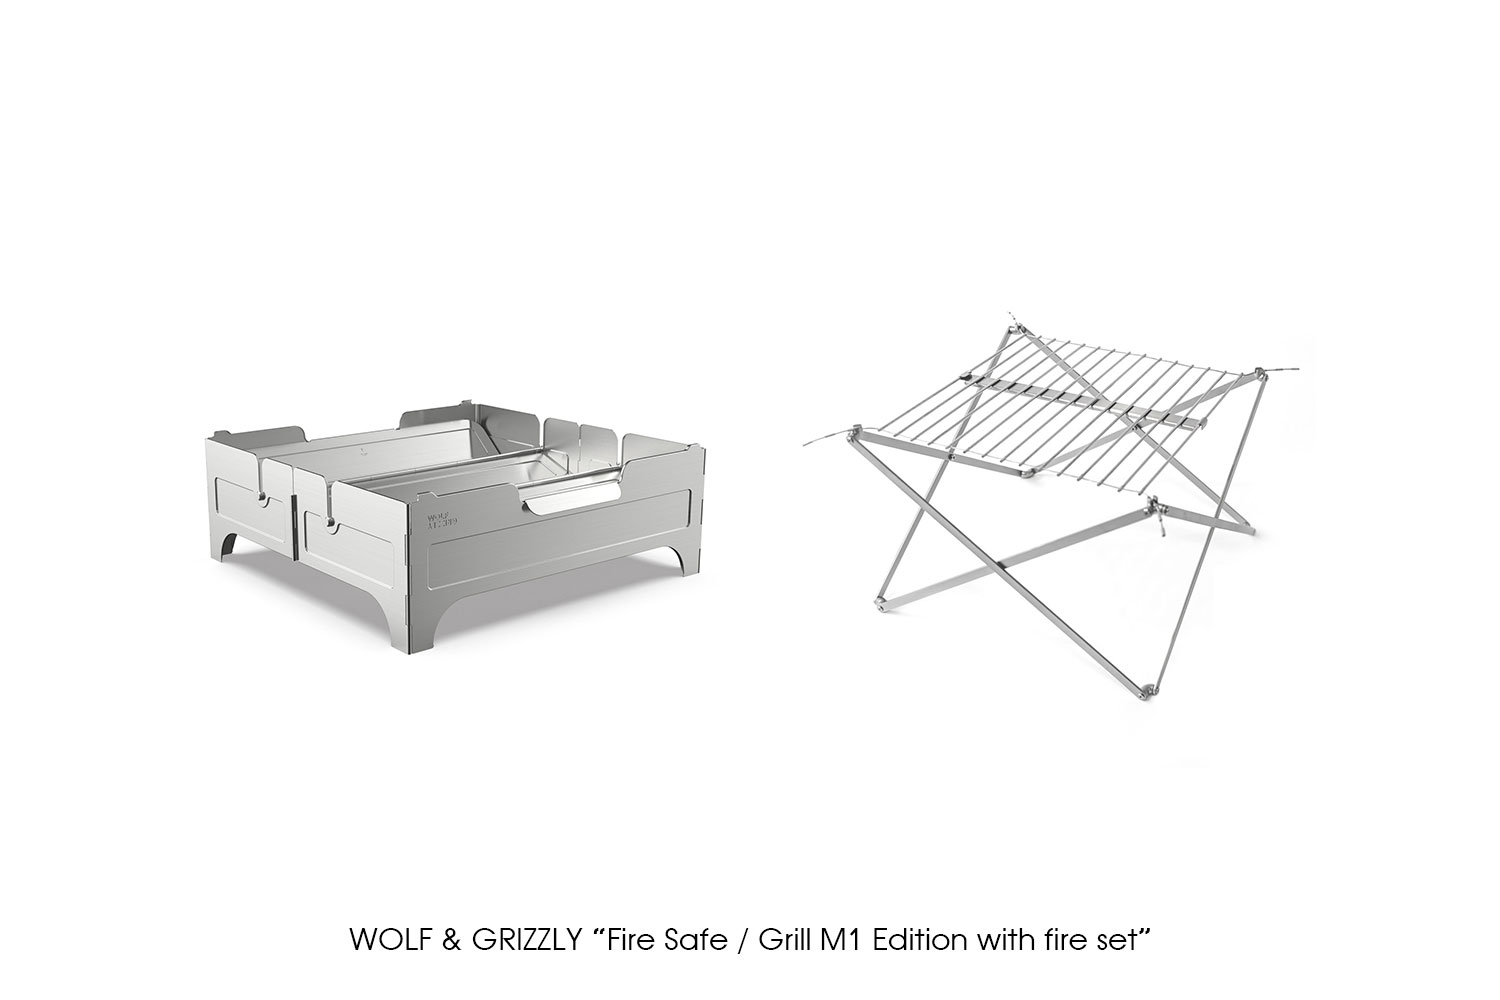 "WOLF & GRIZZLY ""Fire Safe / Grill M1 Edition with fire set"""